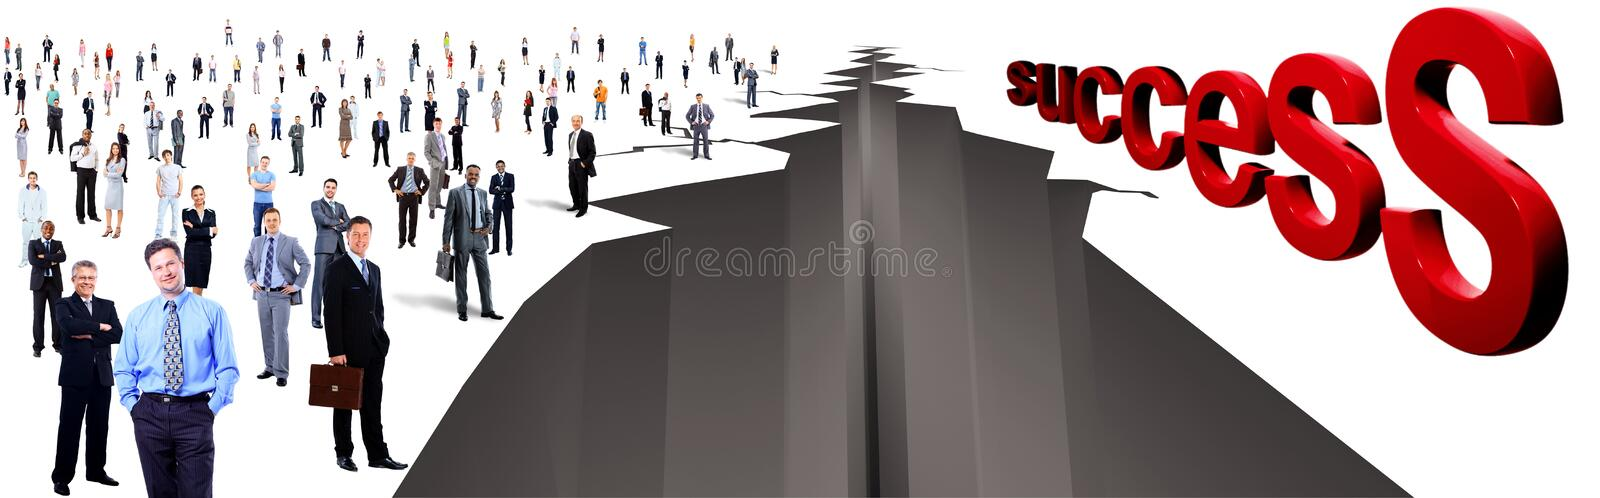 Gap between two large group of people stock image